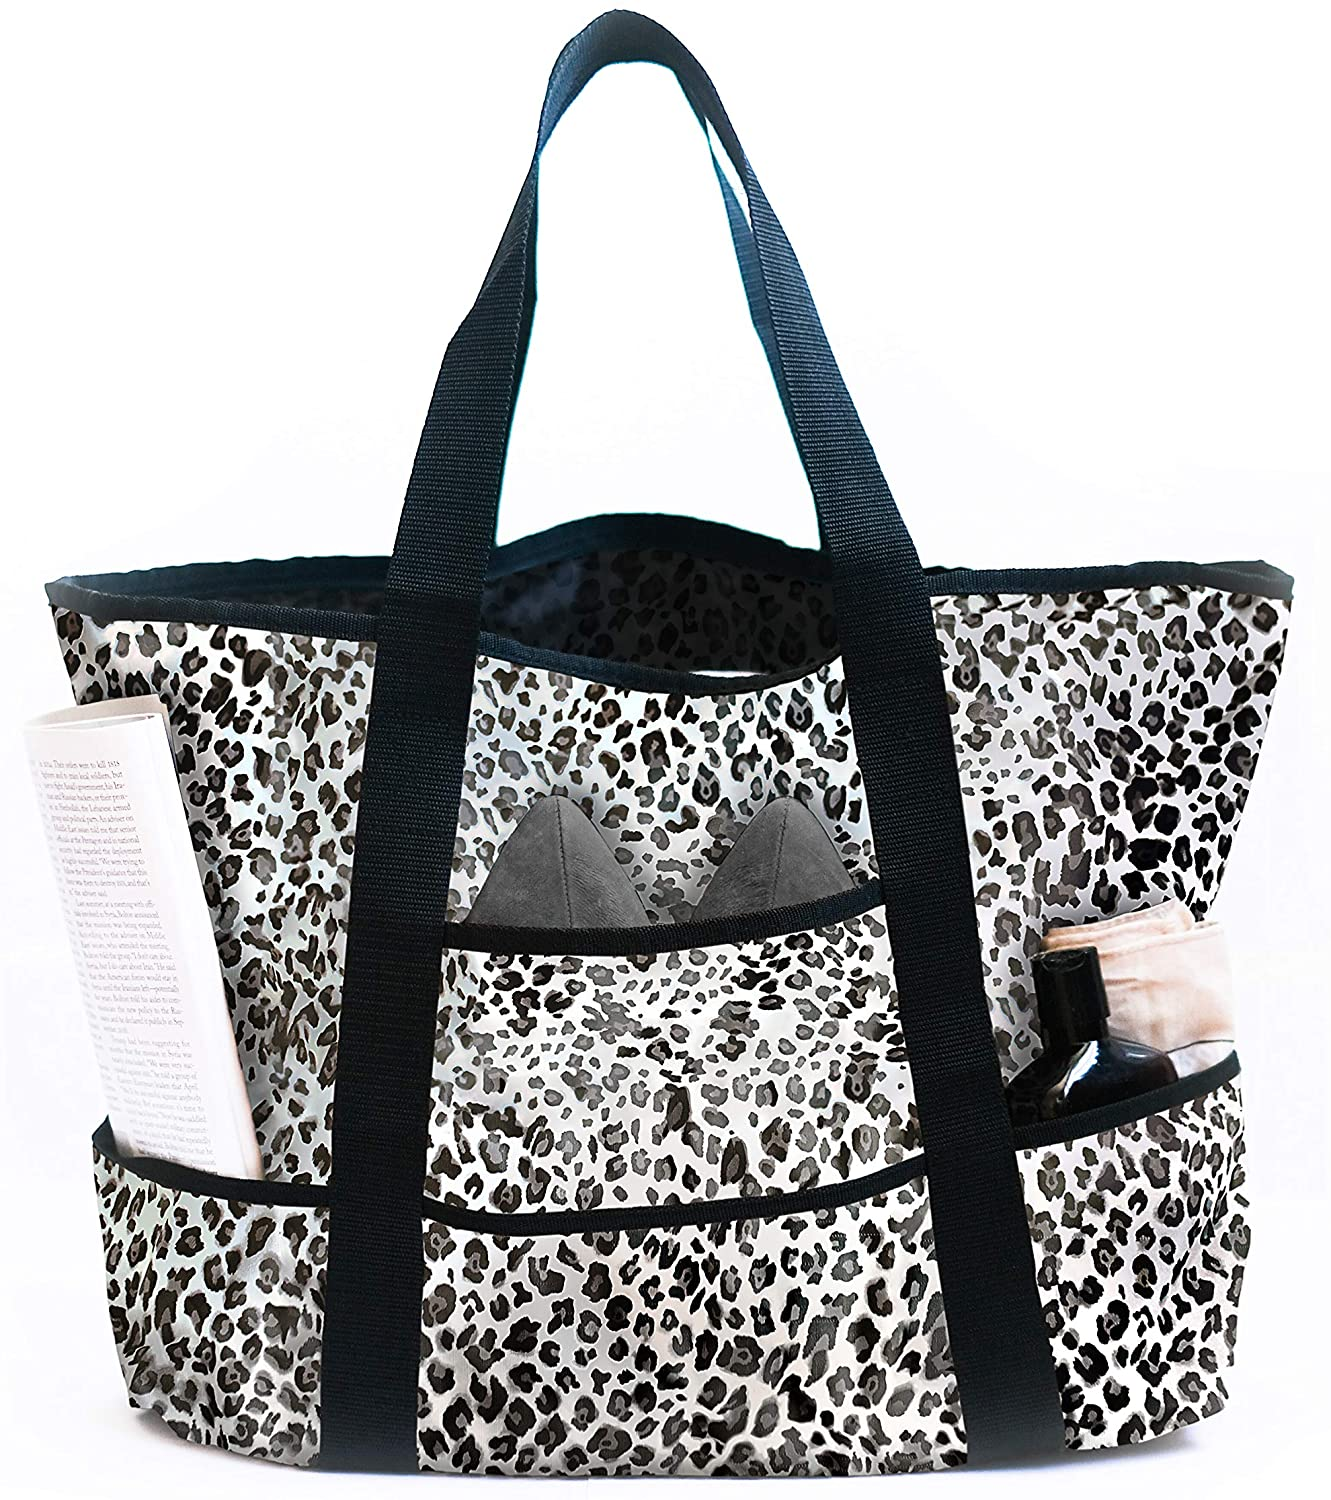 Dejaroo Water-Resistant Weekend Overnight Bag - Beach/Toy Tote Bag - Large Lightweight Market, Grocery & Picnic Tote with Oversized Pockets (White Leopard)